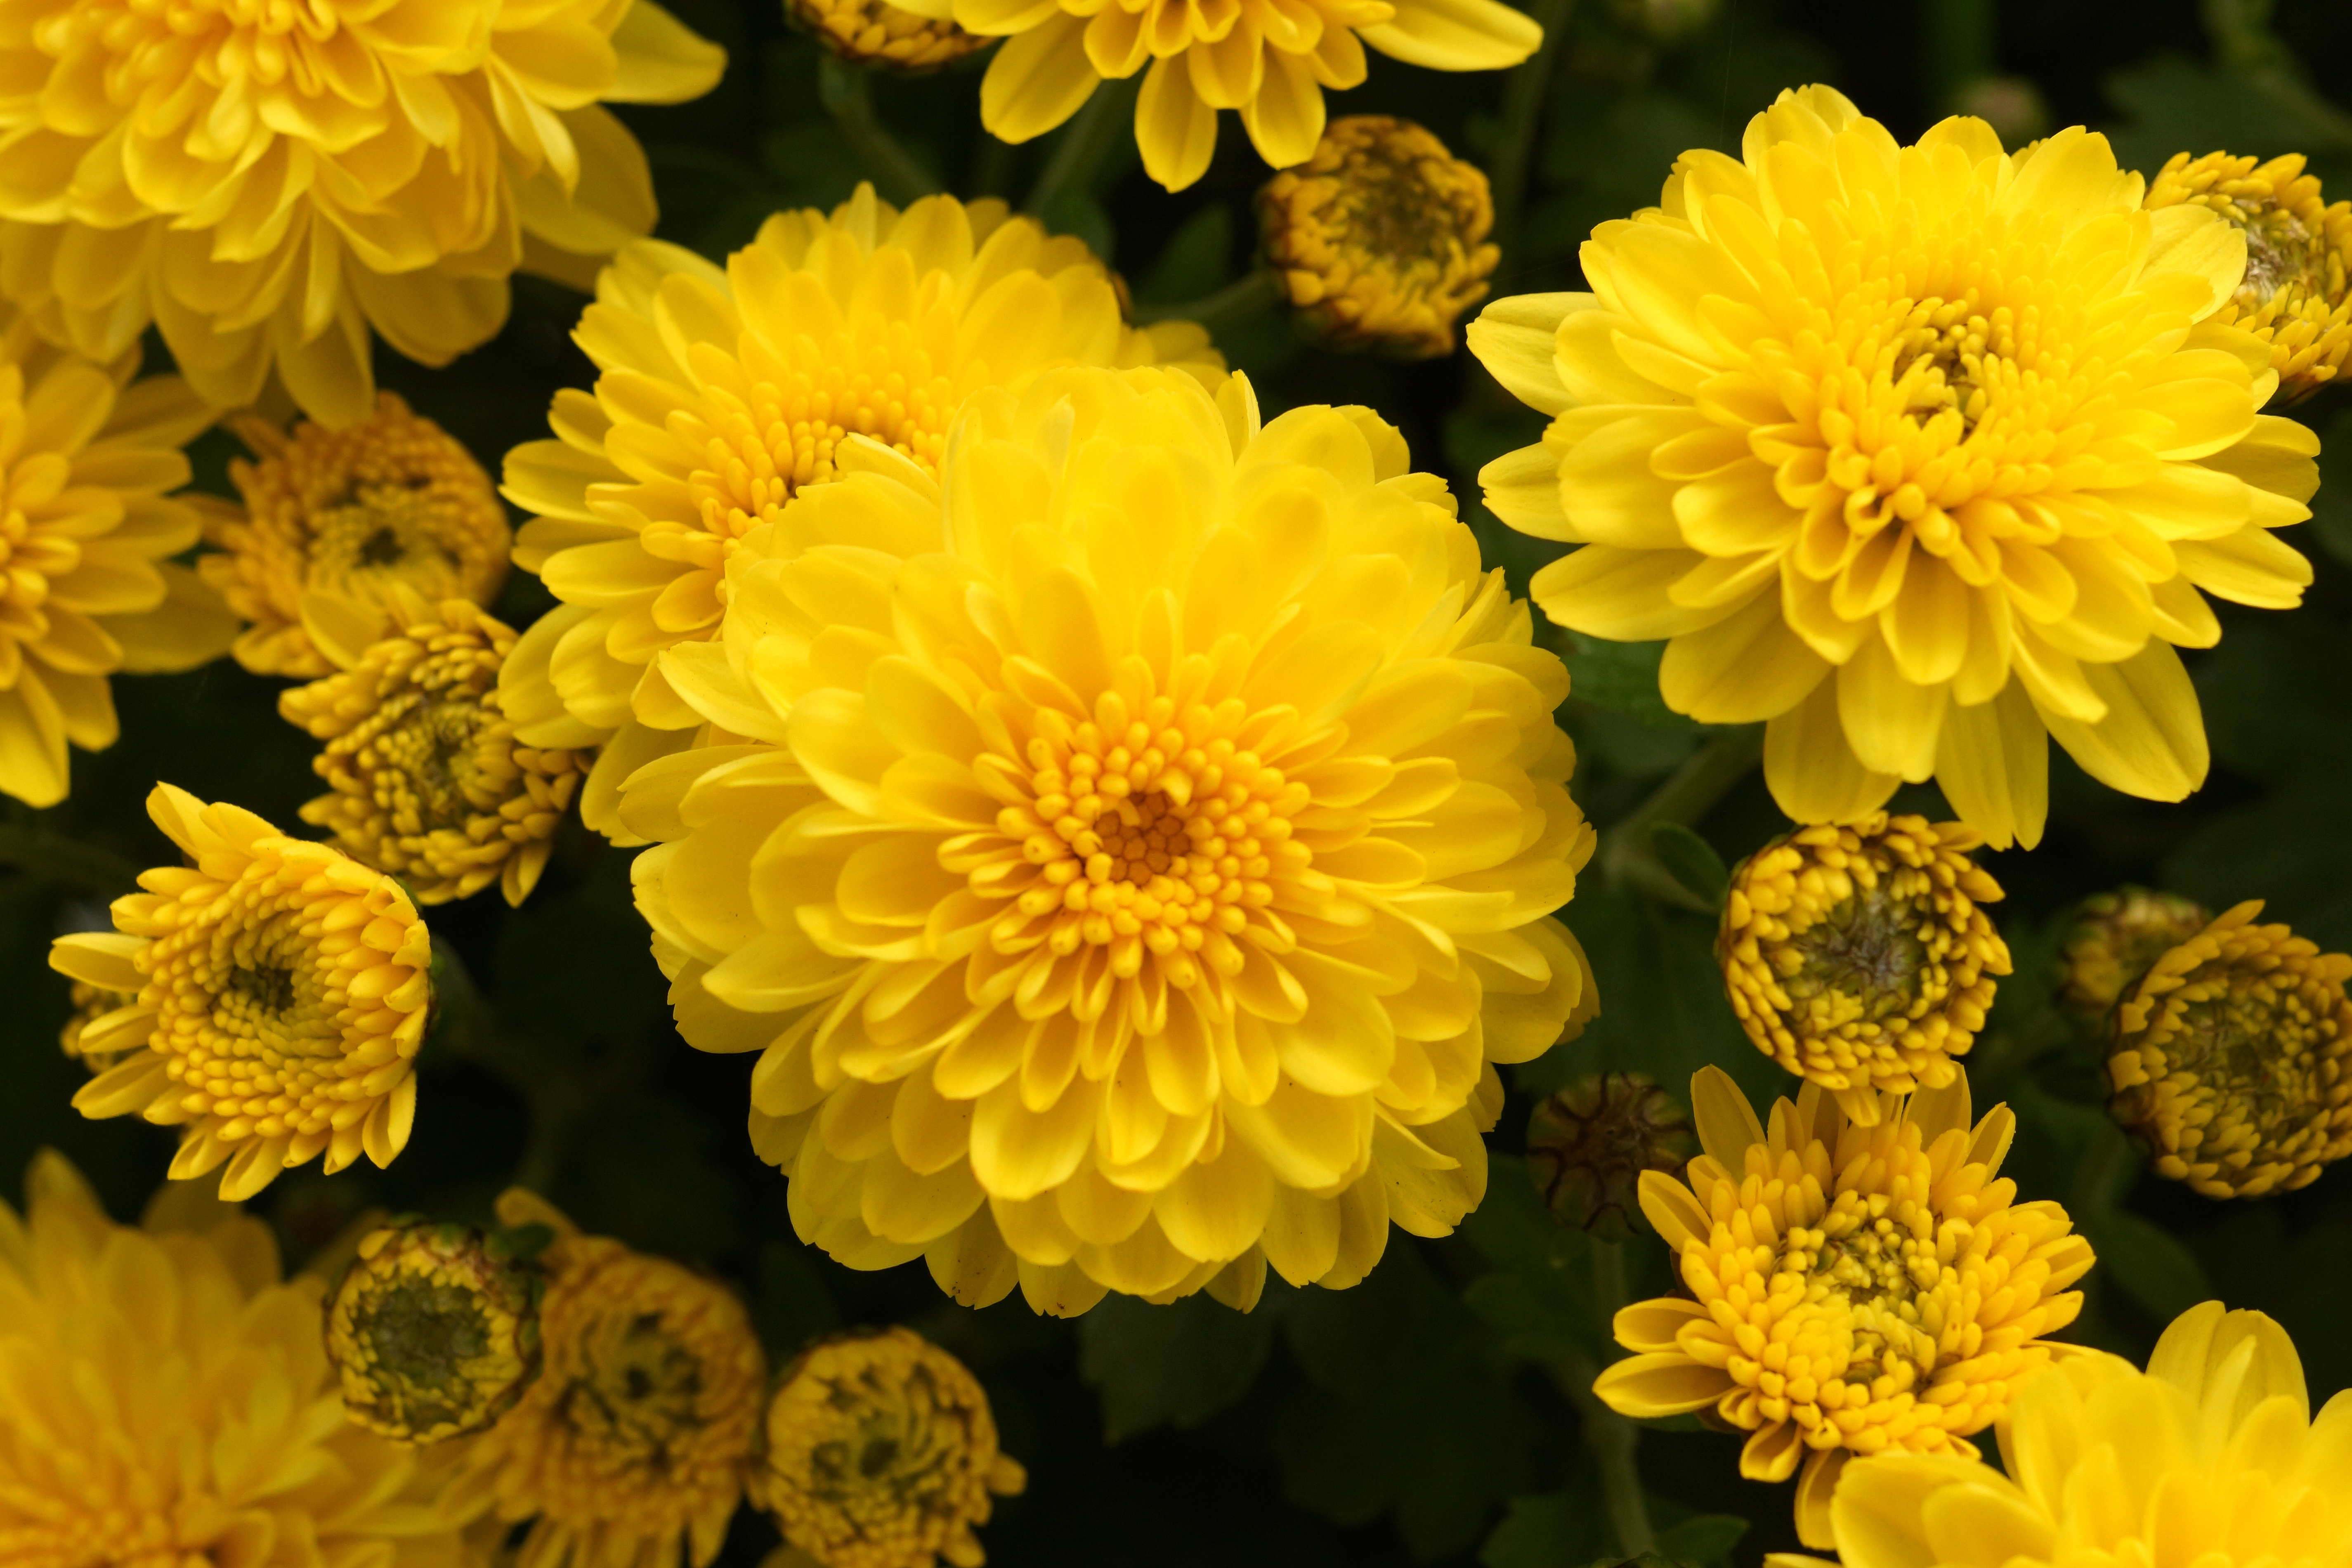 How To Grow Chrysanthemums From Cuttings